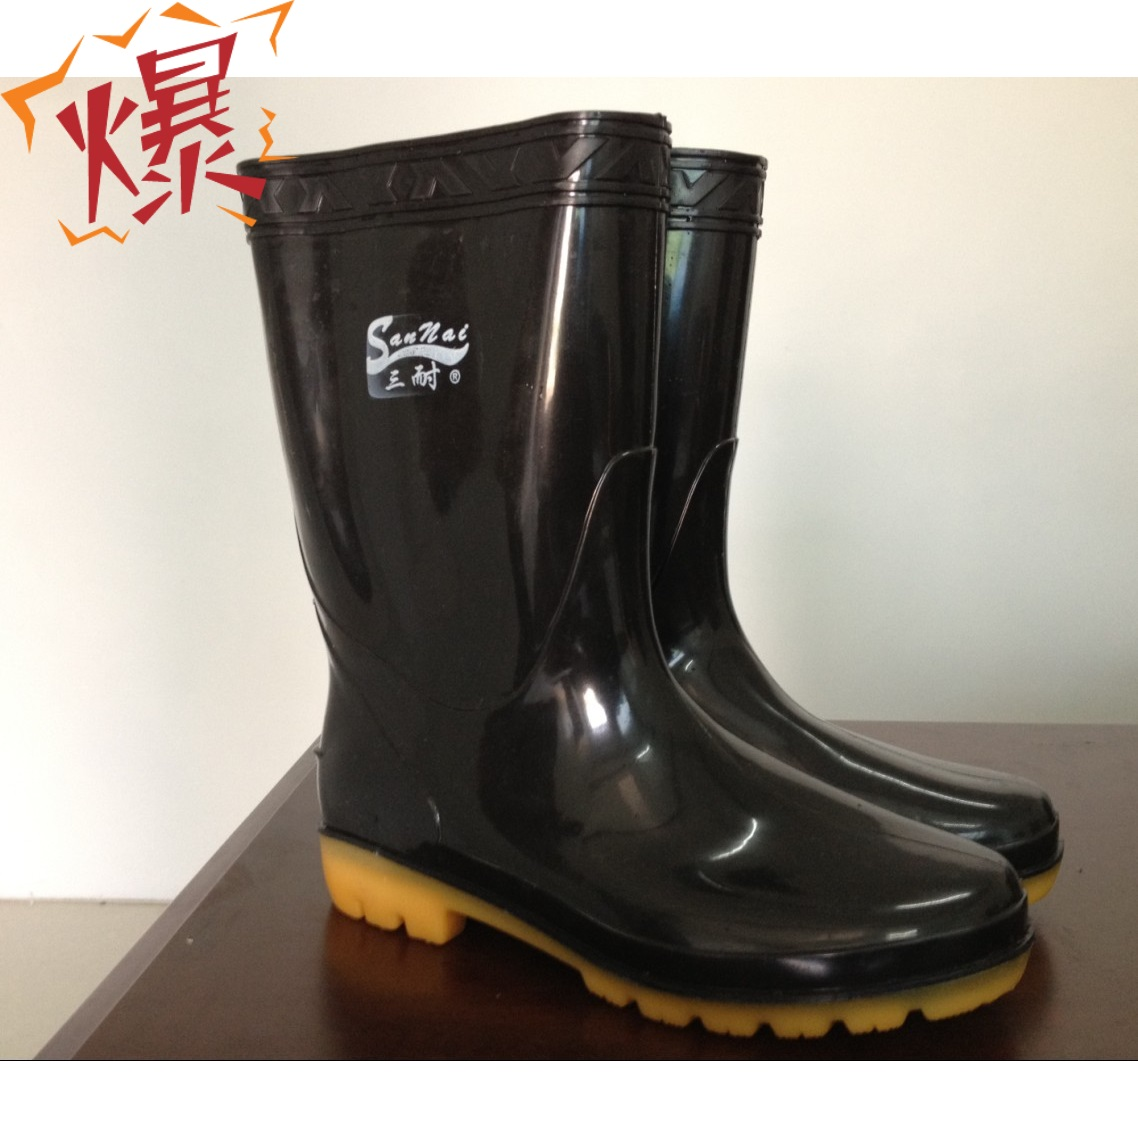 Rain boots male rainboots knee-high boots slip-resistant plus size 45 46 47(China (Mainland))